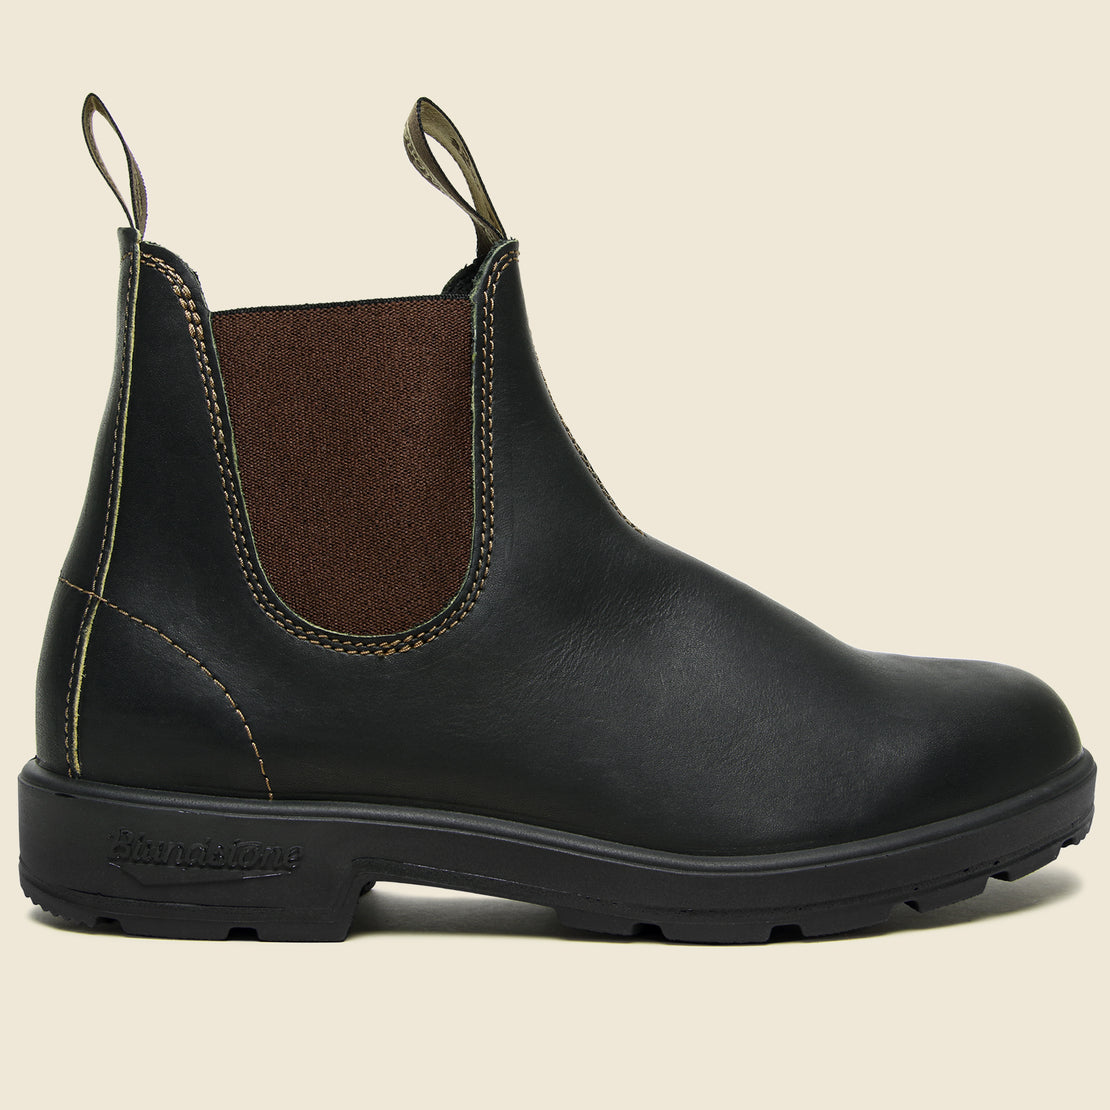 Blundstone 500 Original Series Boot - Stout Brown